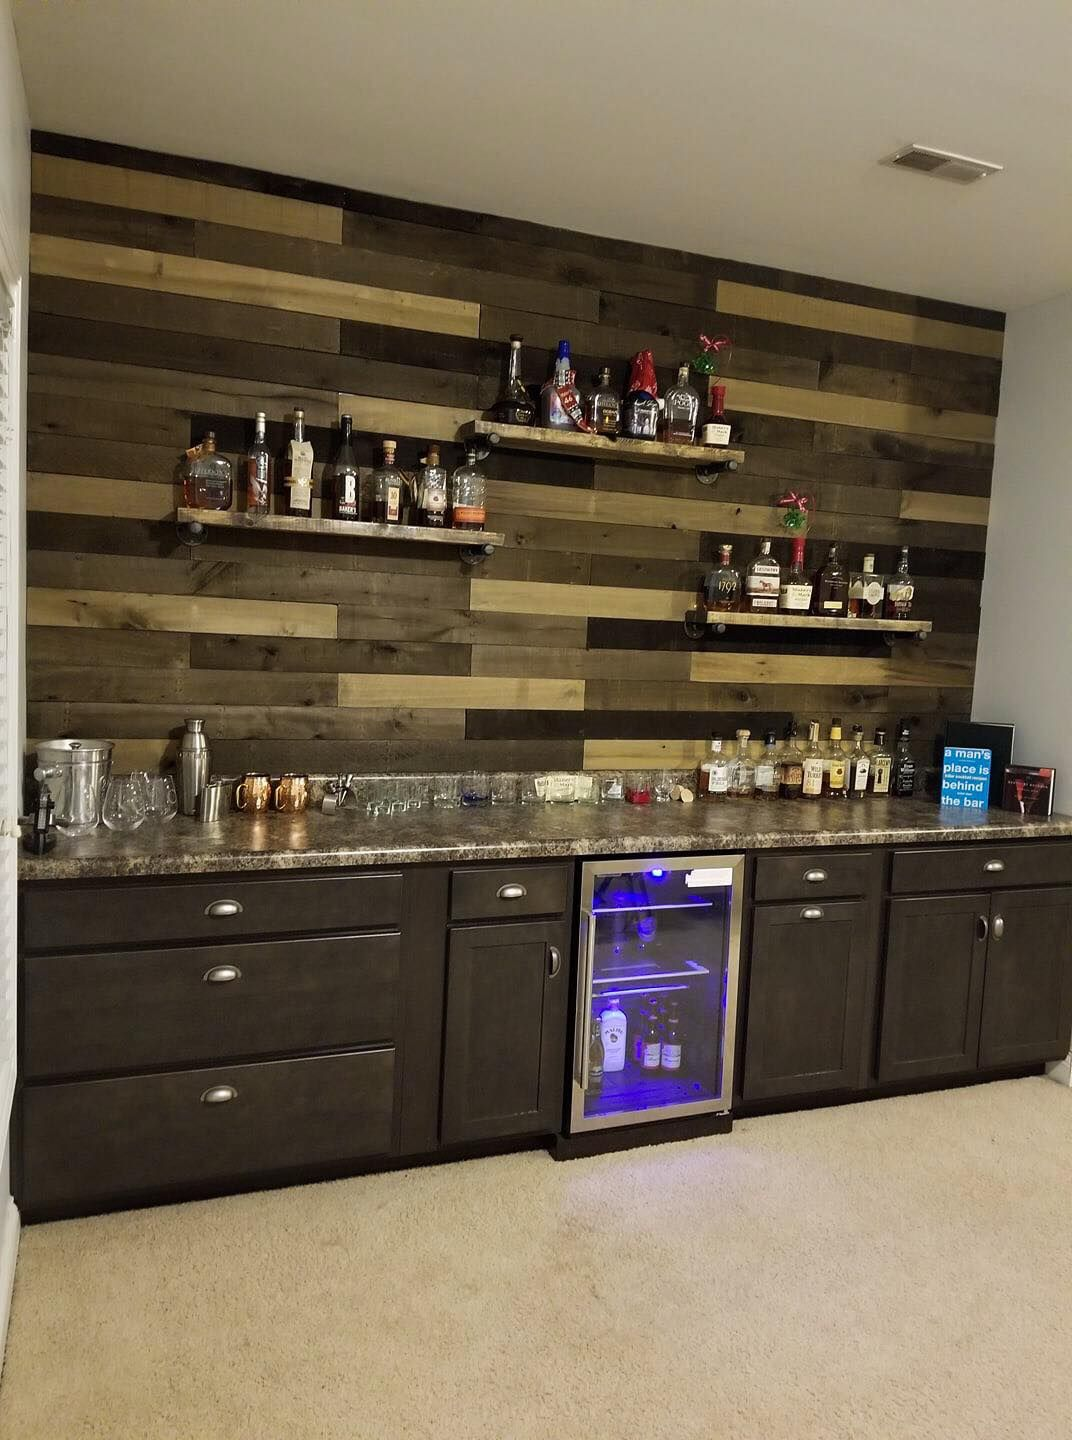 basement bar shiplap floating shelves home bars for ikea leksvik bedside table inch corner shelf low profile instead upper cabinets open kitchen cabinet wooden island bookcase